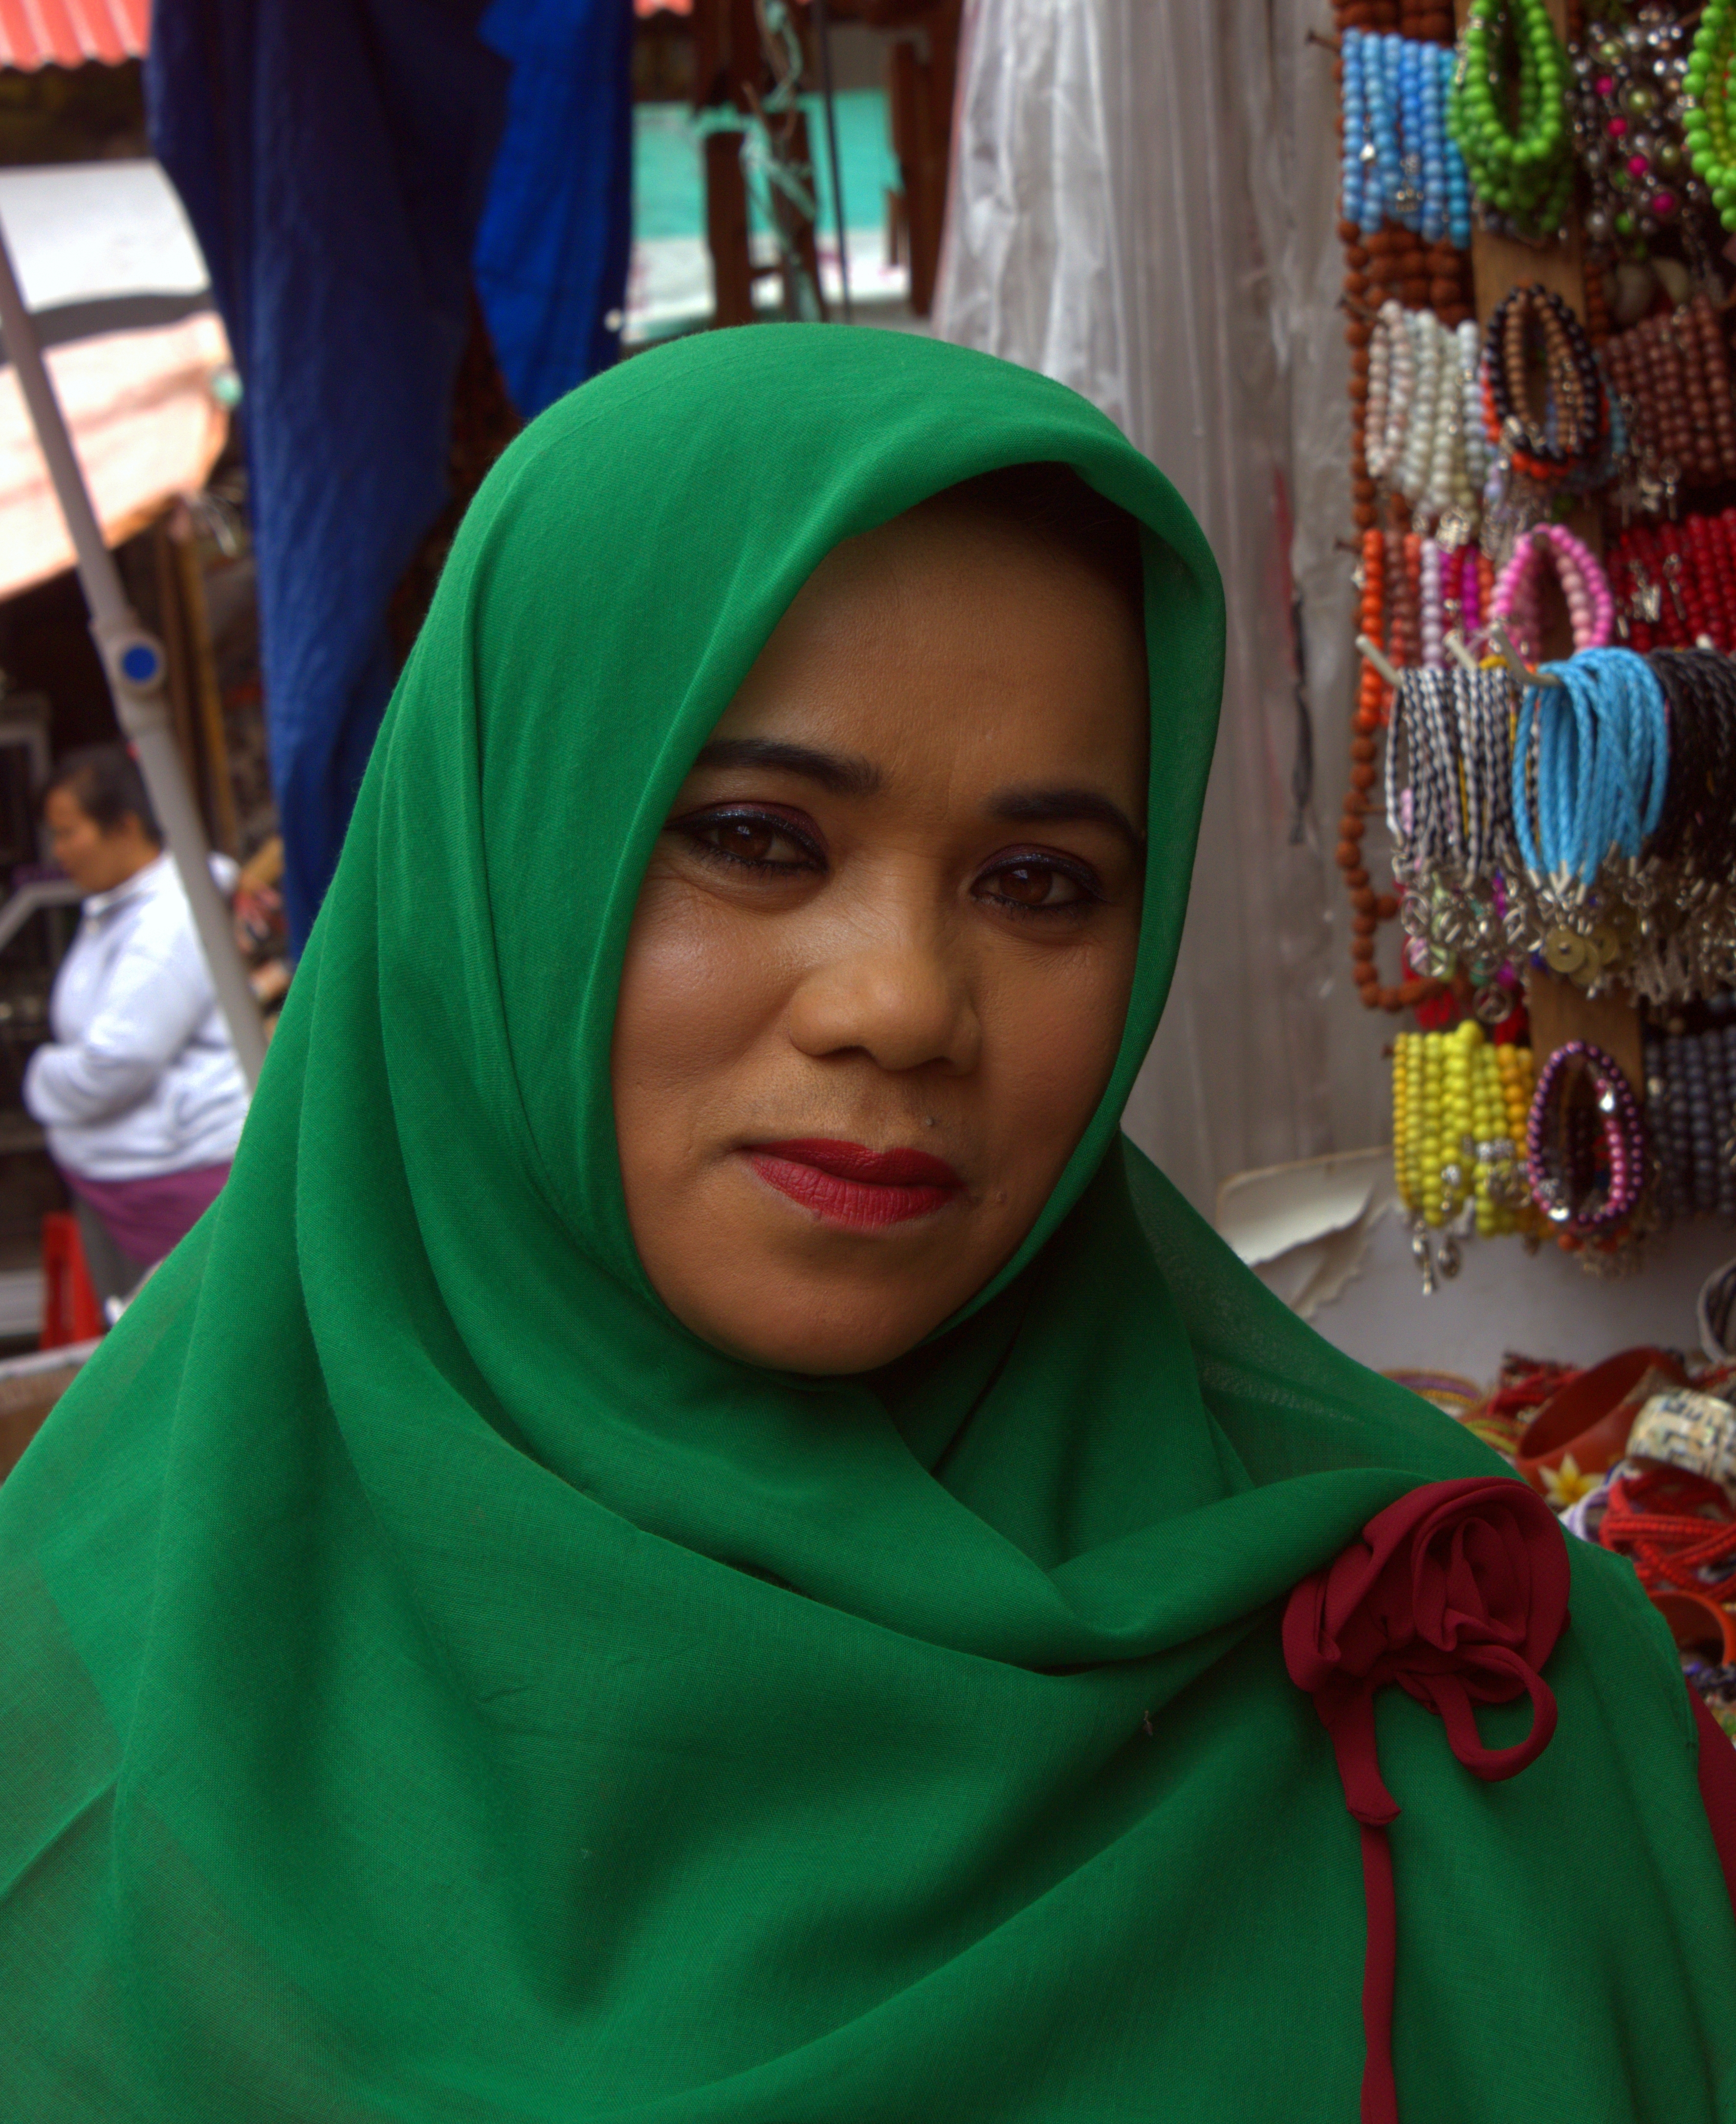 lombok is a conservative muslim island